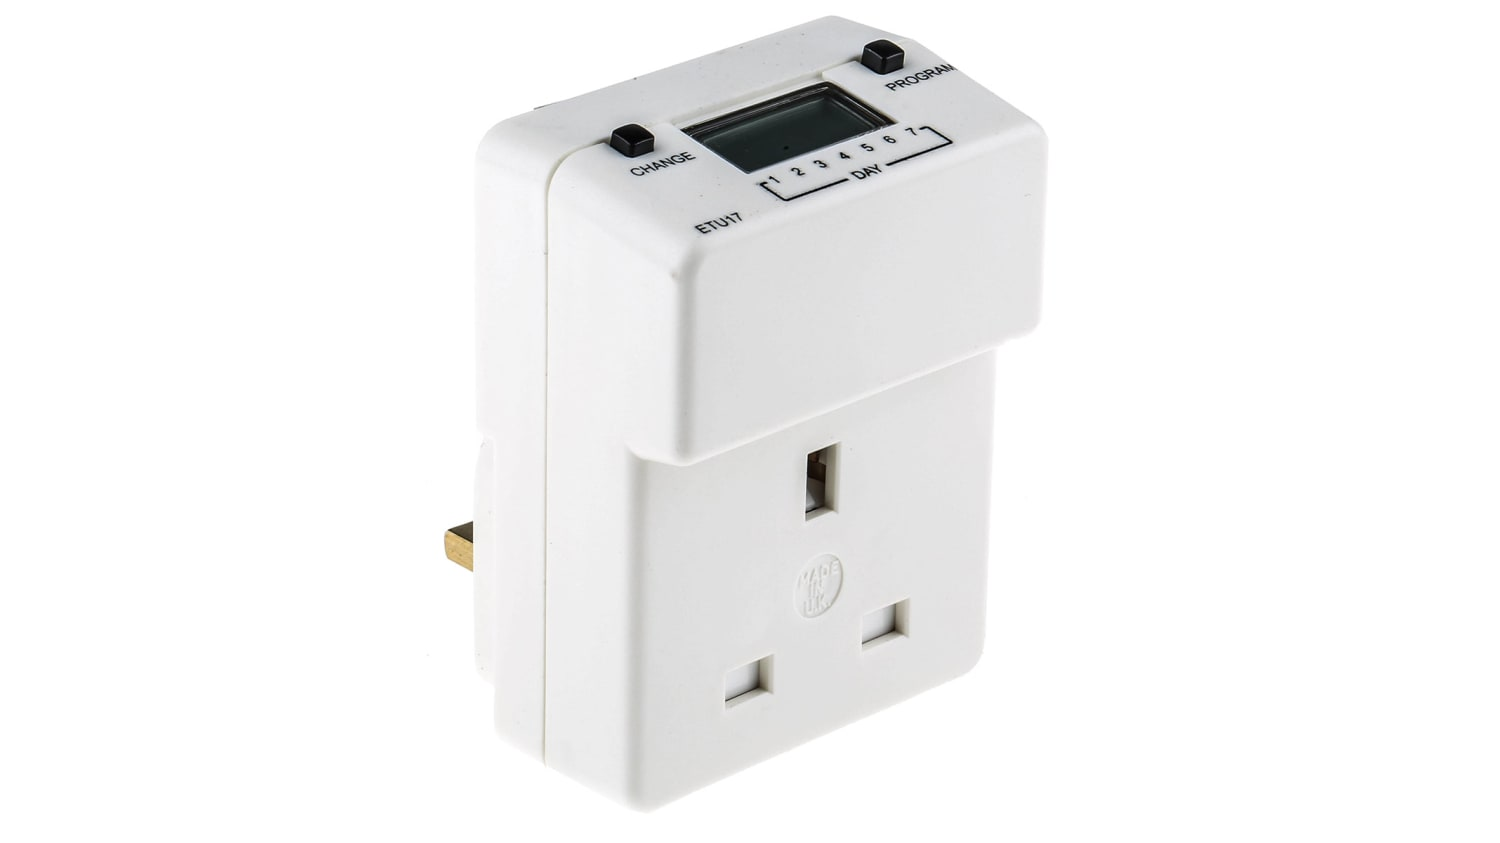 Etu17 Theben Timeguard Digital Electric Timer Switch 3 Pin Bs 1363 1000h Rs Components